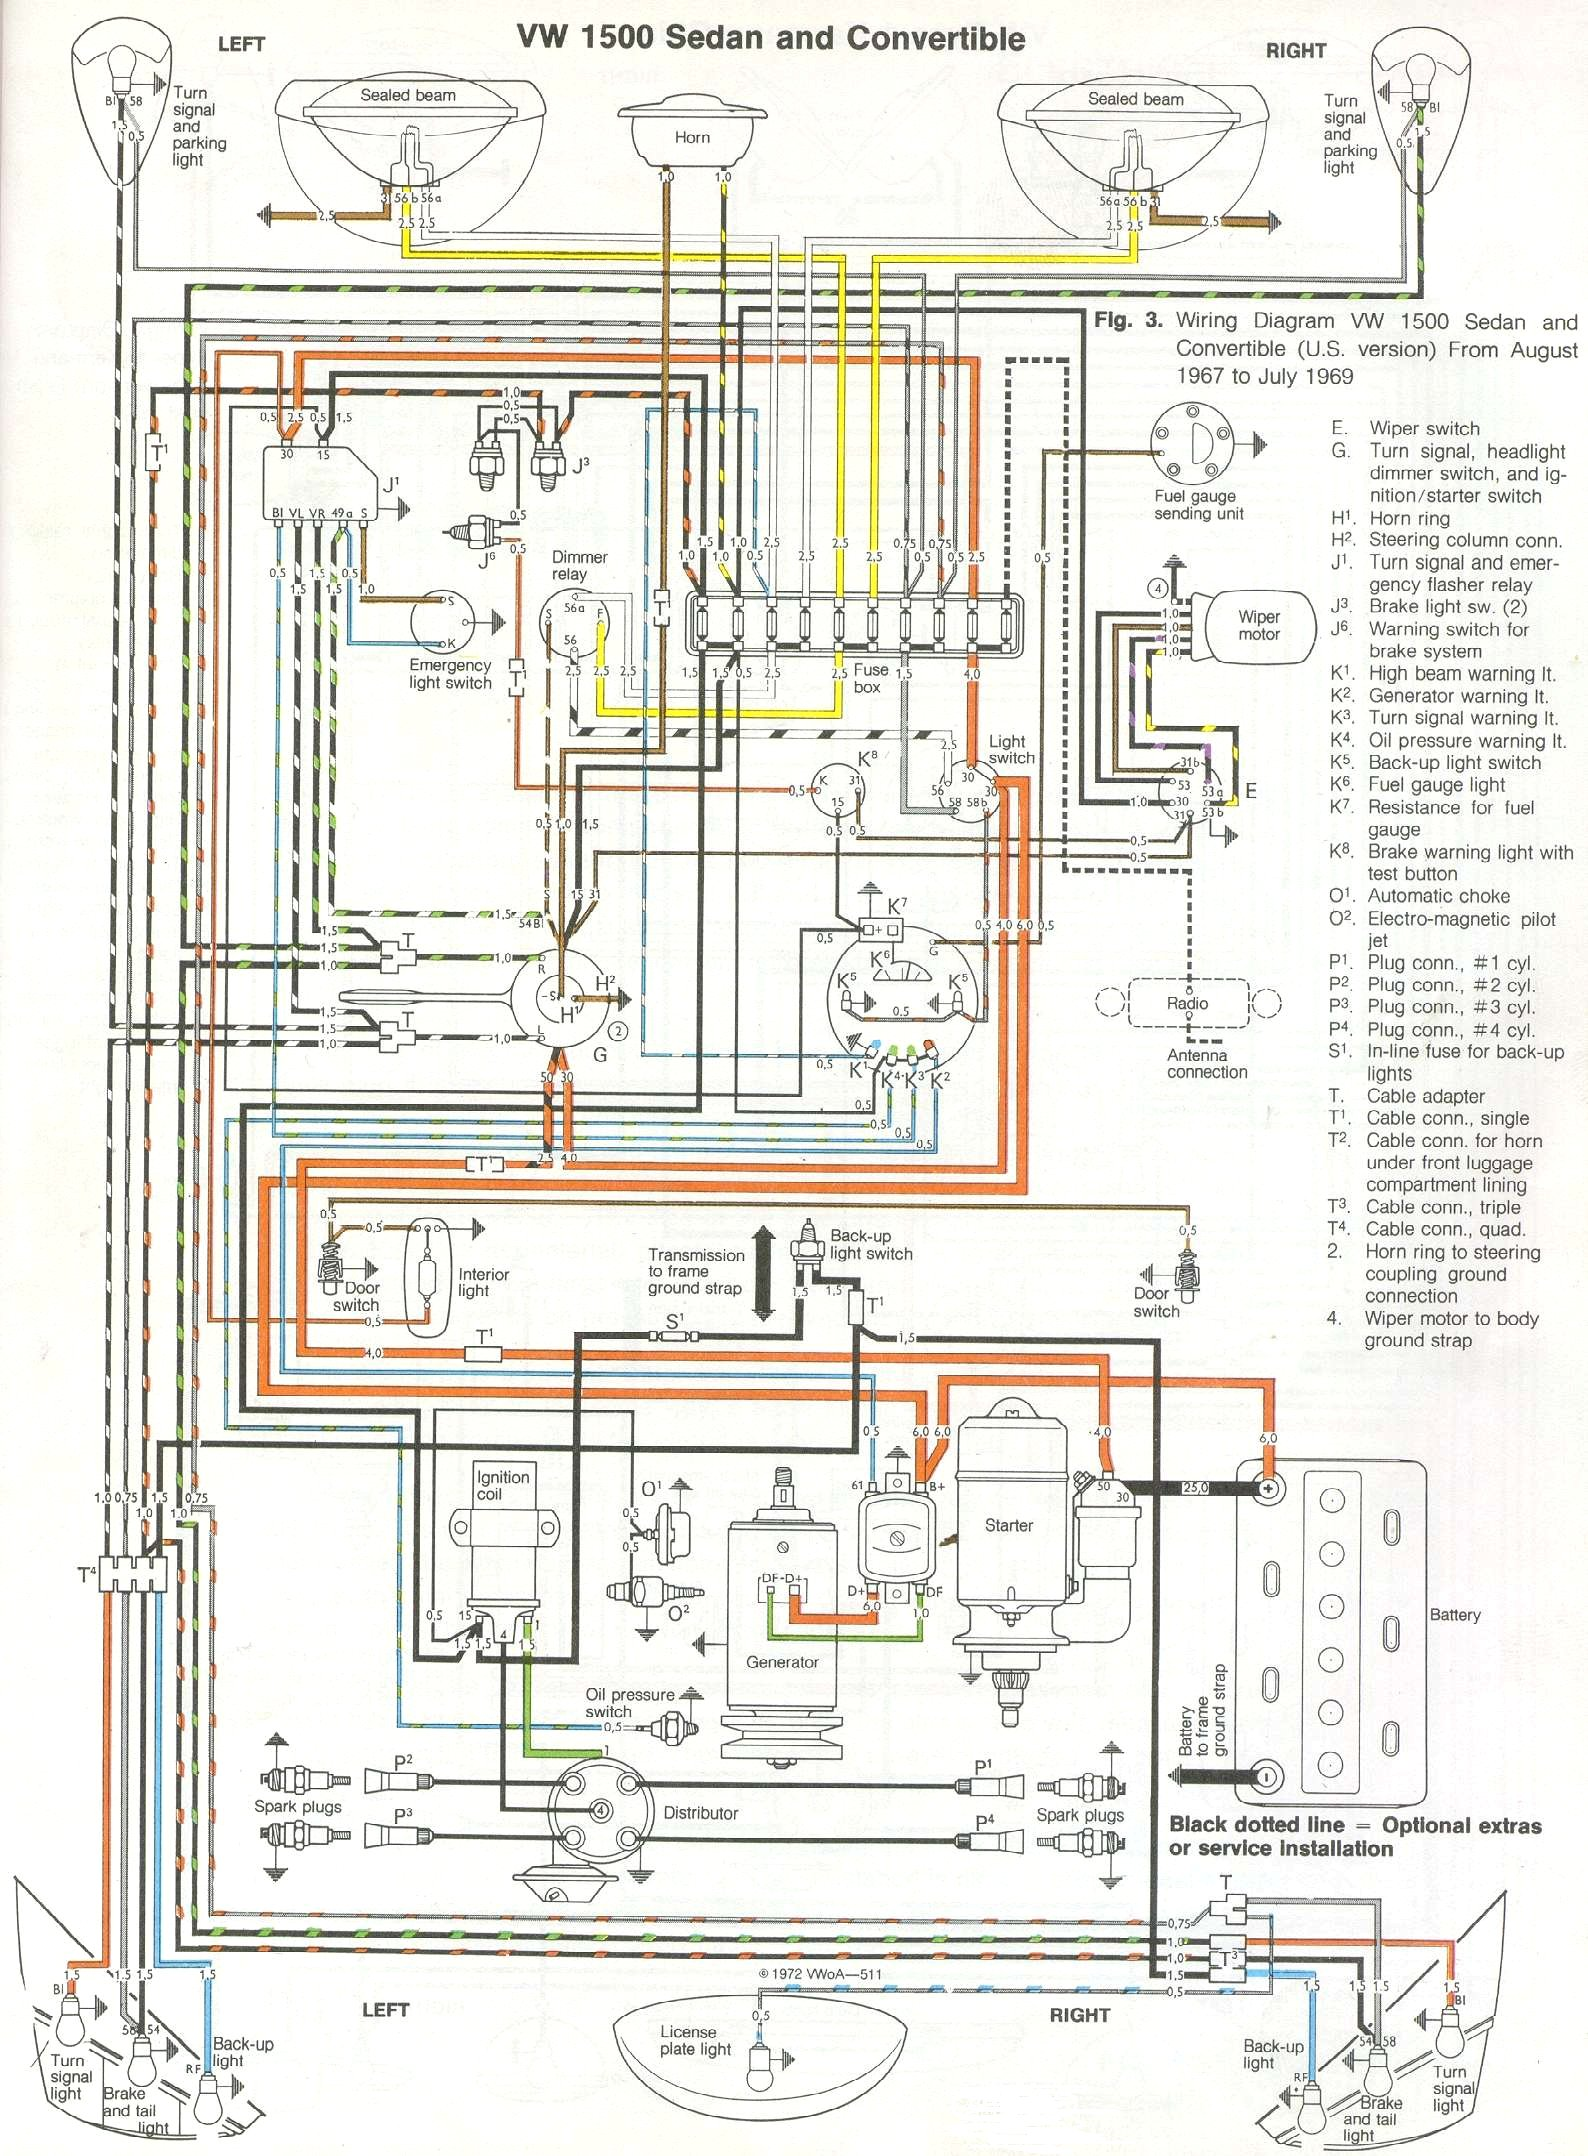 1969 71 beetle wiring diagram thegoldenbug com rh thegoldenbug com 1970 vw fastback wiring diagram 1970 vw ignition wiring diagram